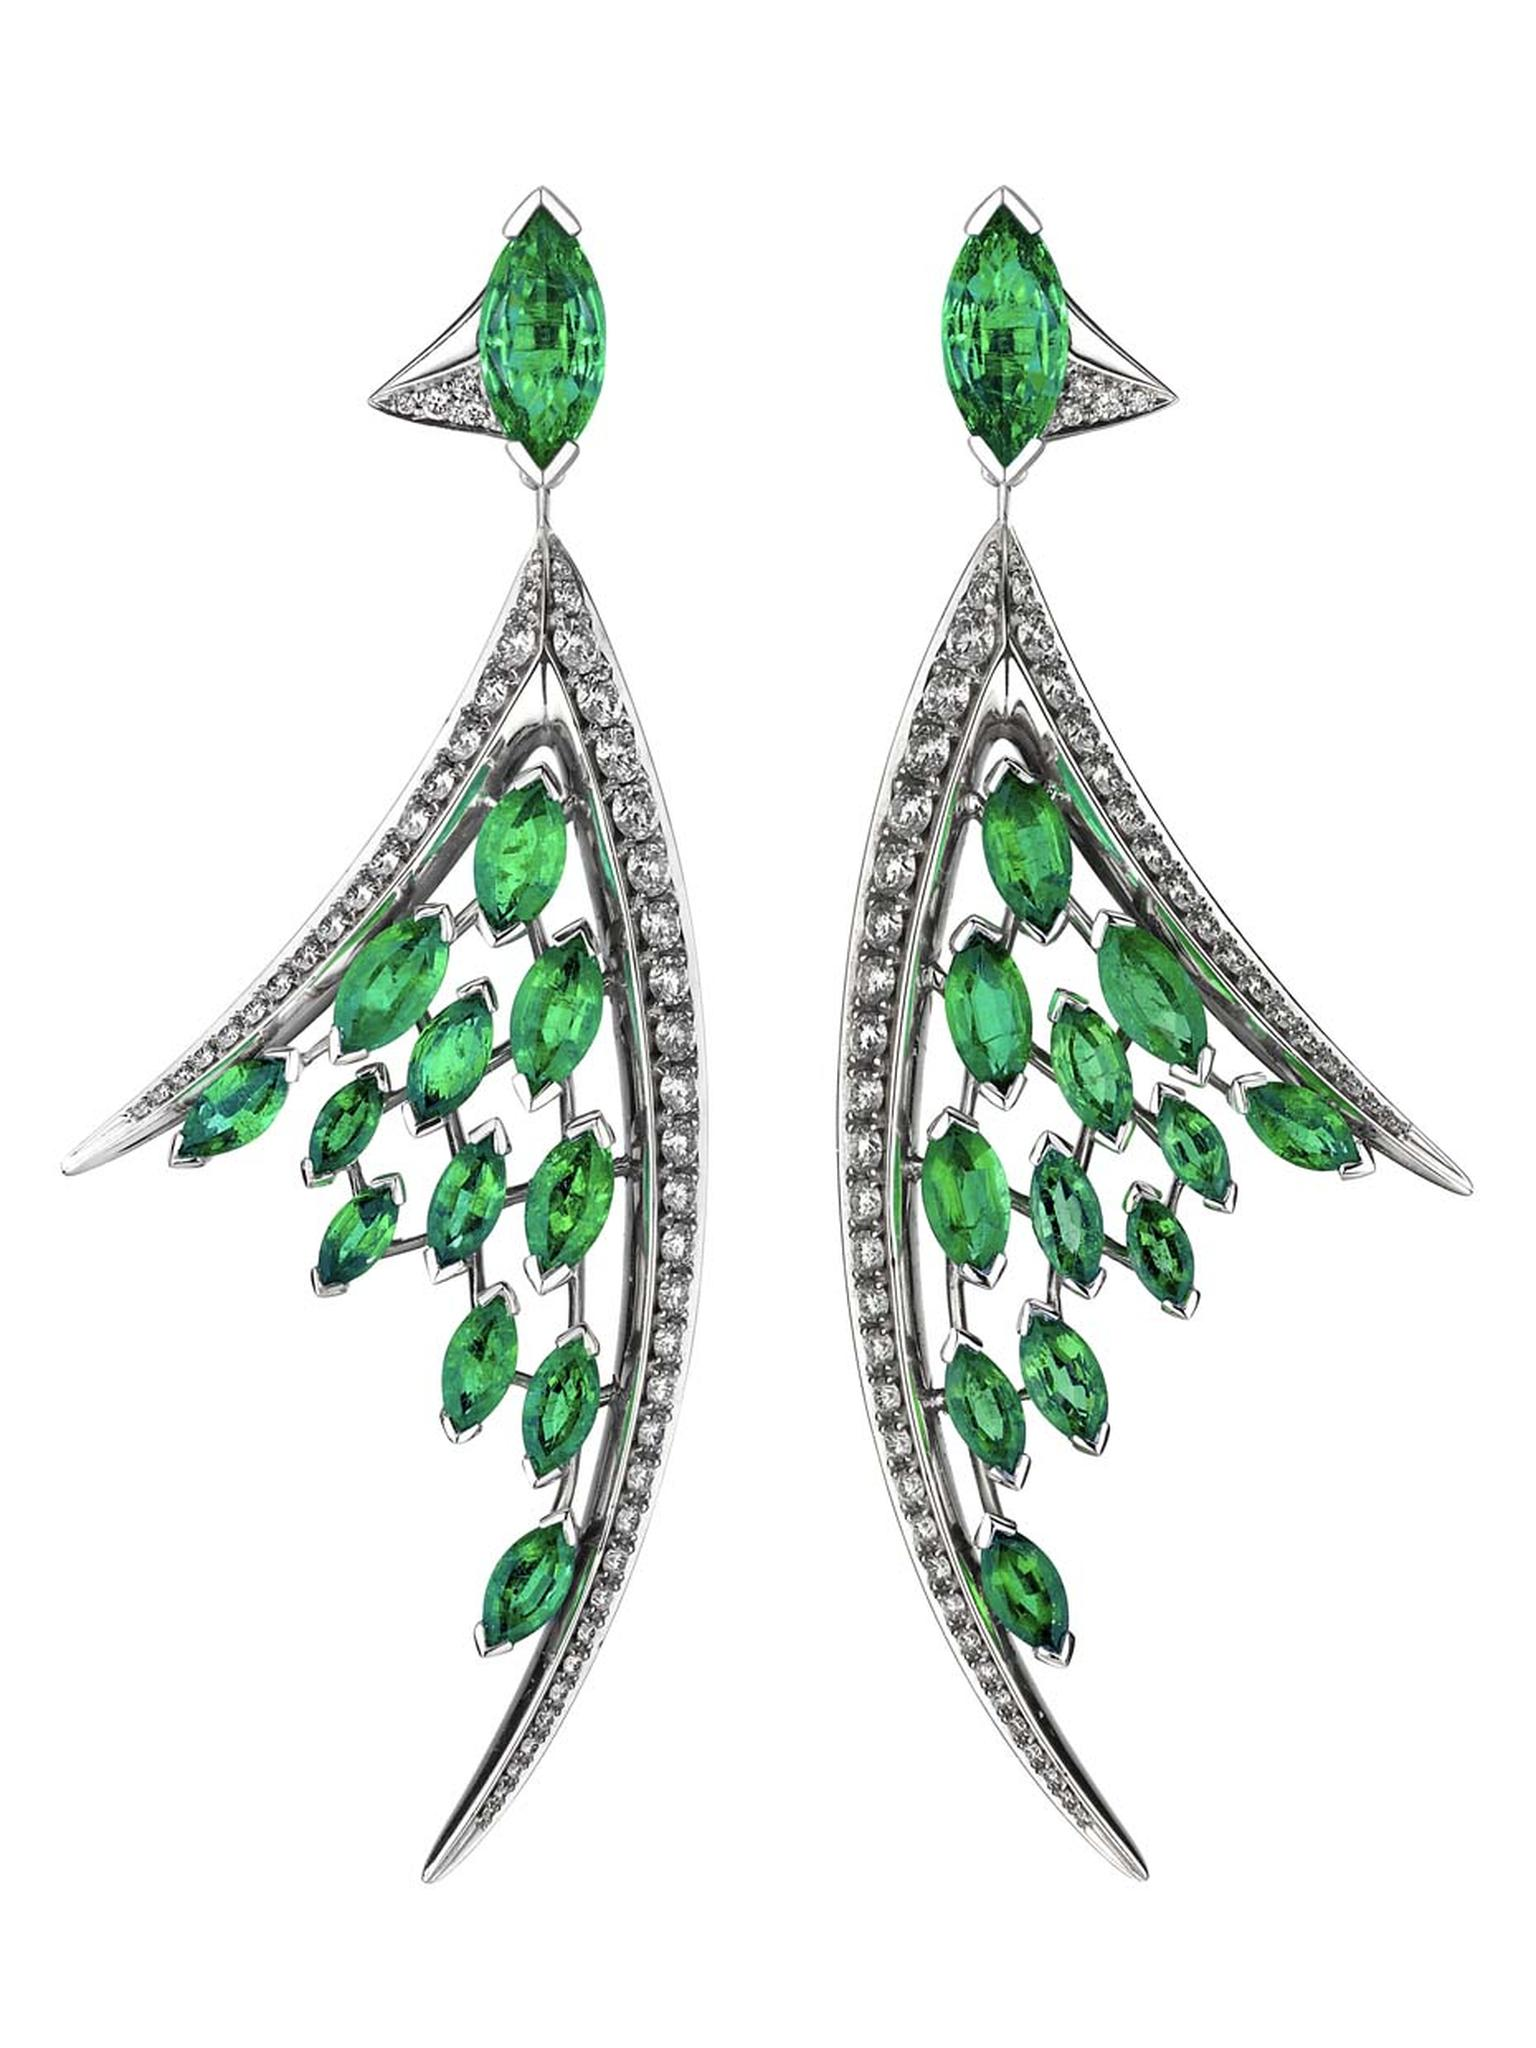 Shaun Leane Aerial collection white diamond and marquise-cut emerald earrings (£27,950.00).